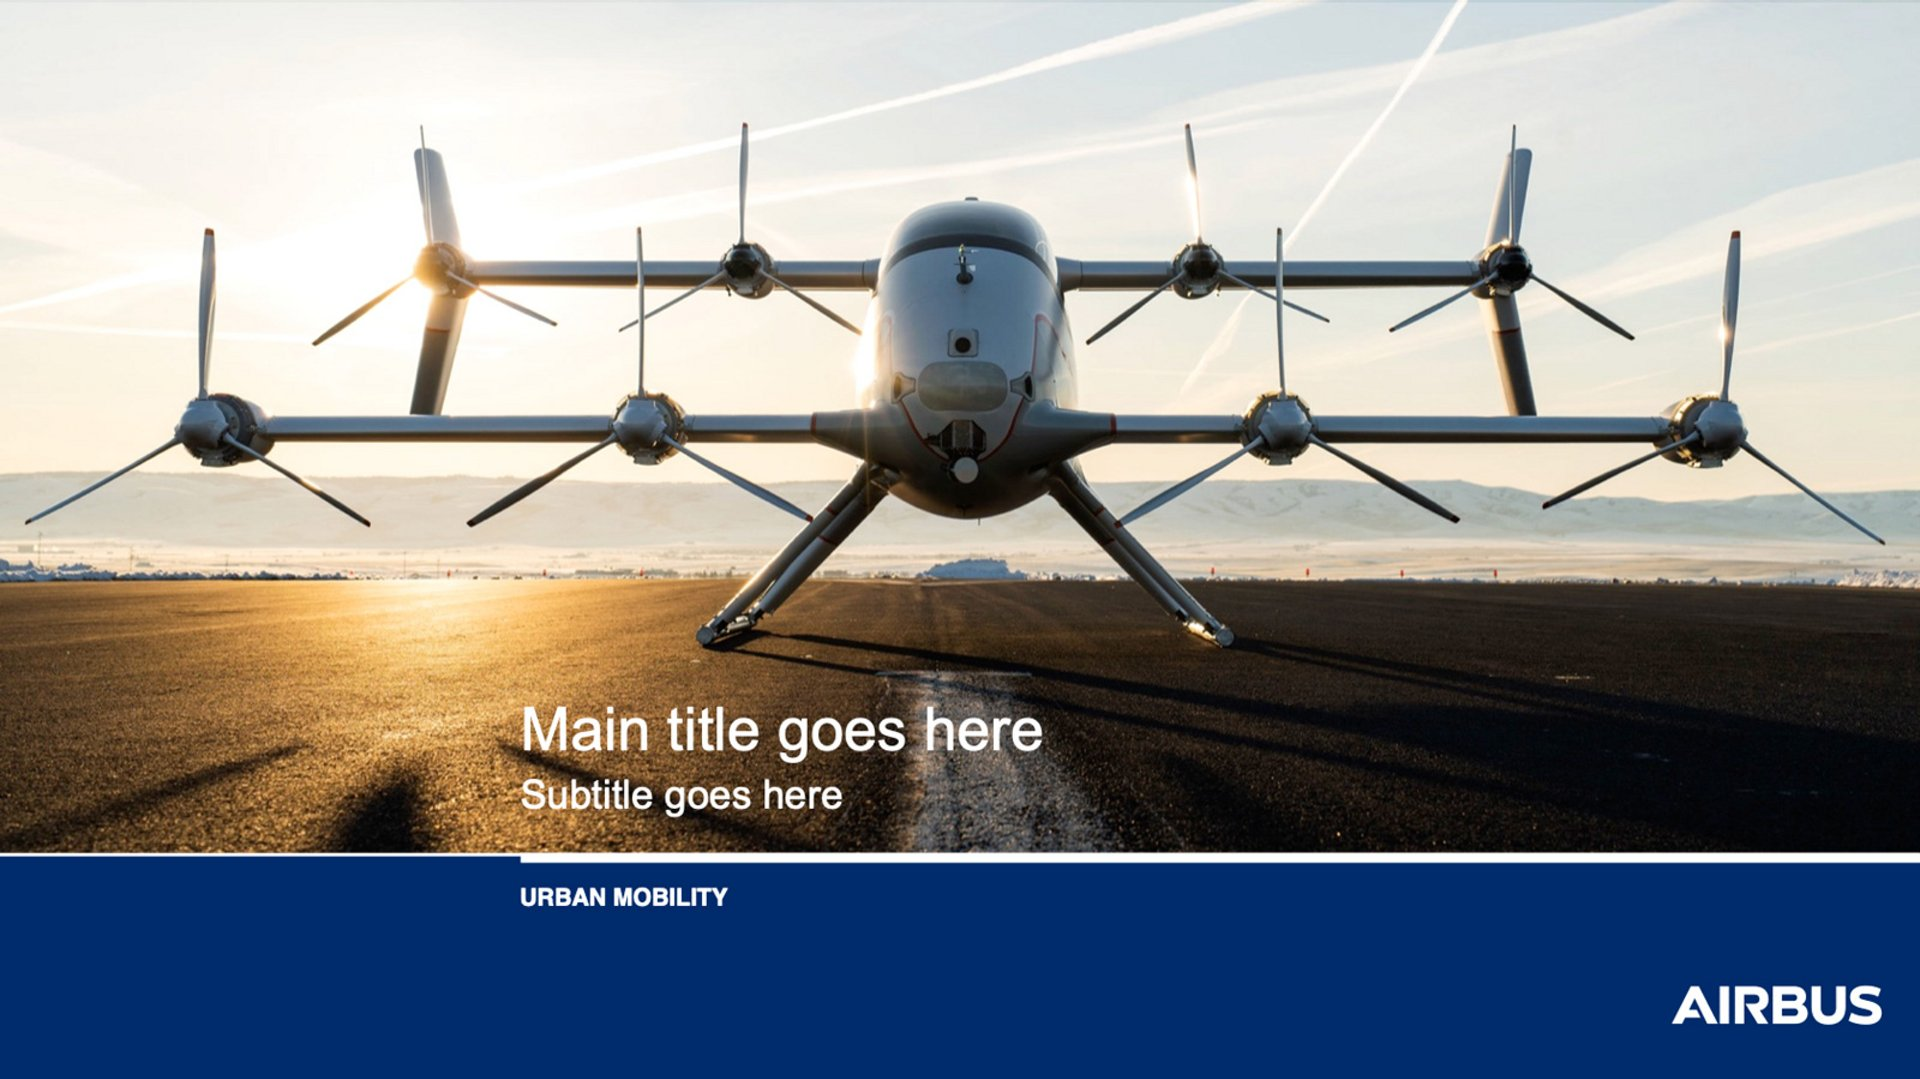 Airbus Urban Mobility PPT Template 2